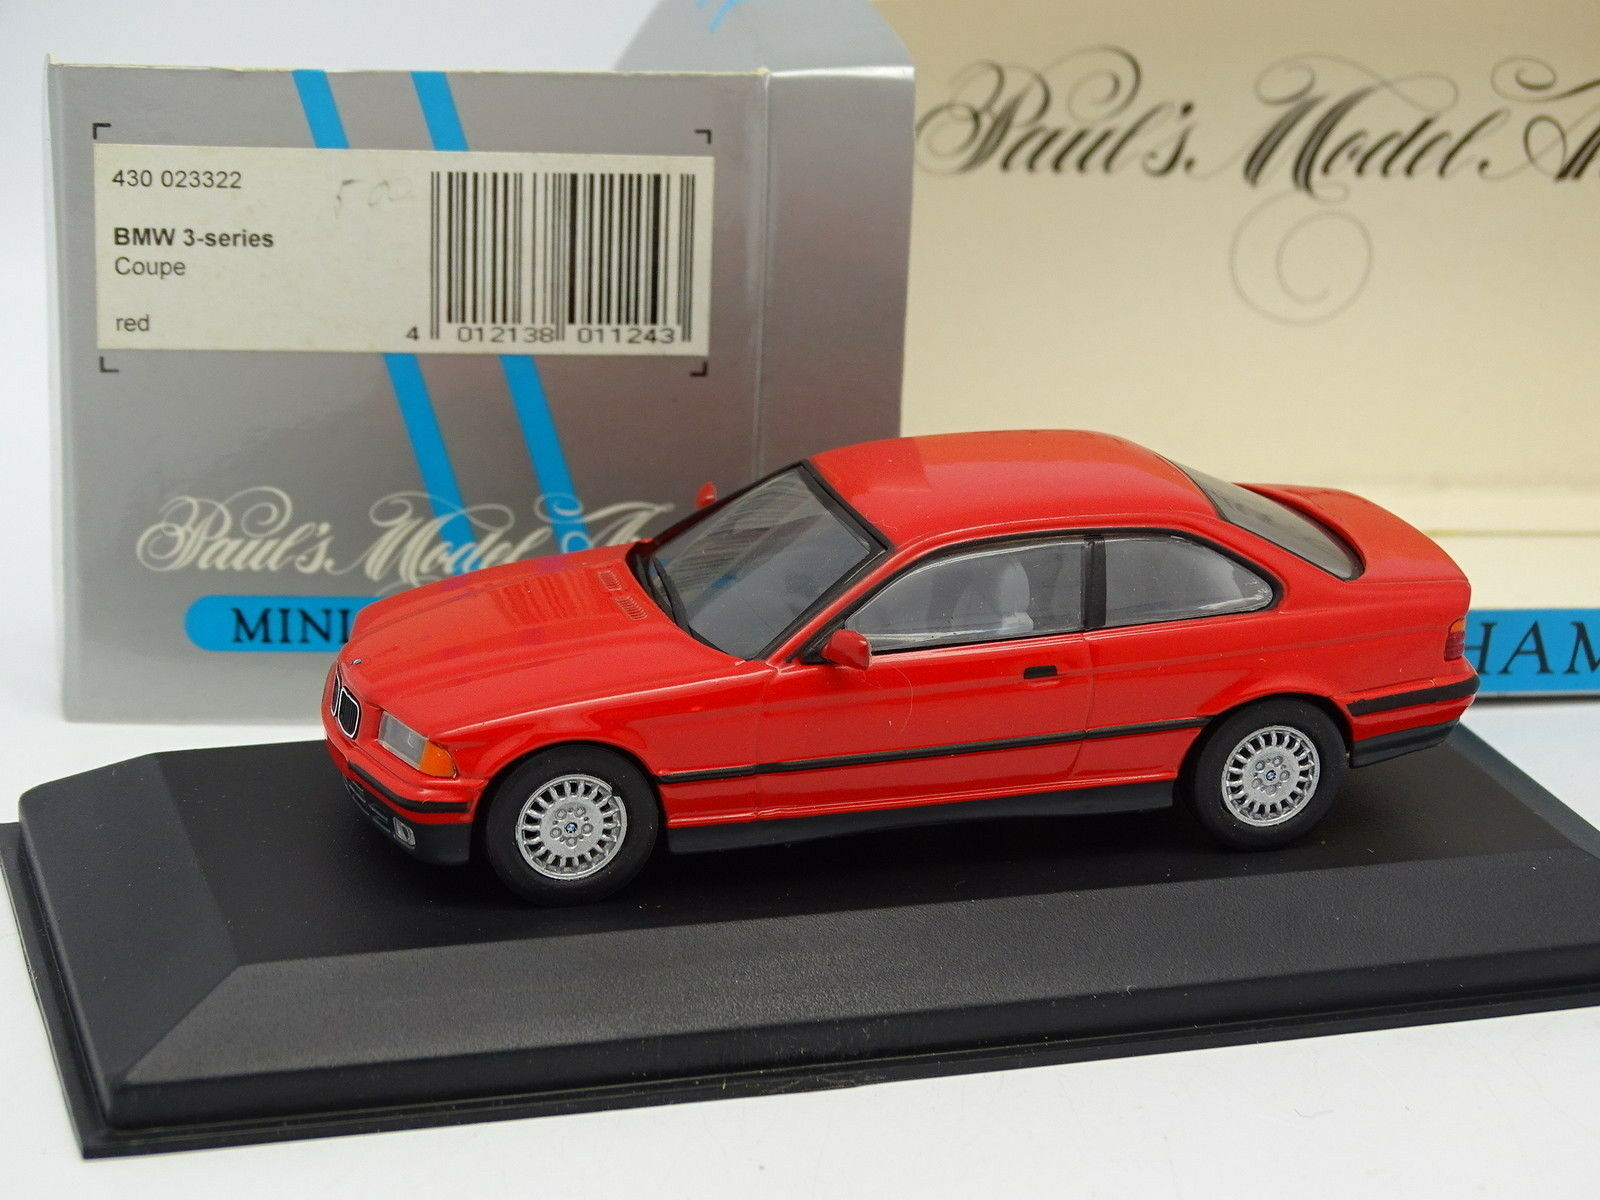 Minichamps 1 43 - BMW Serie 3 E36 Coupé red